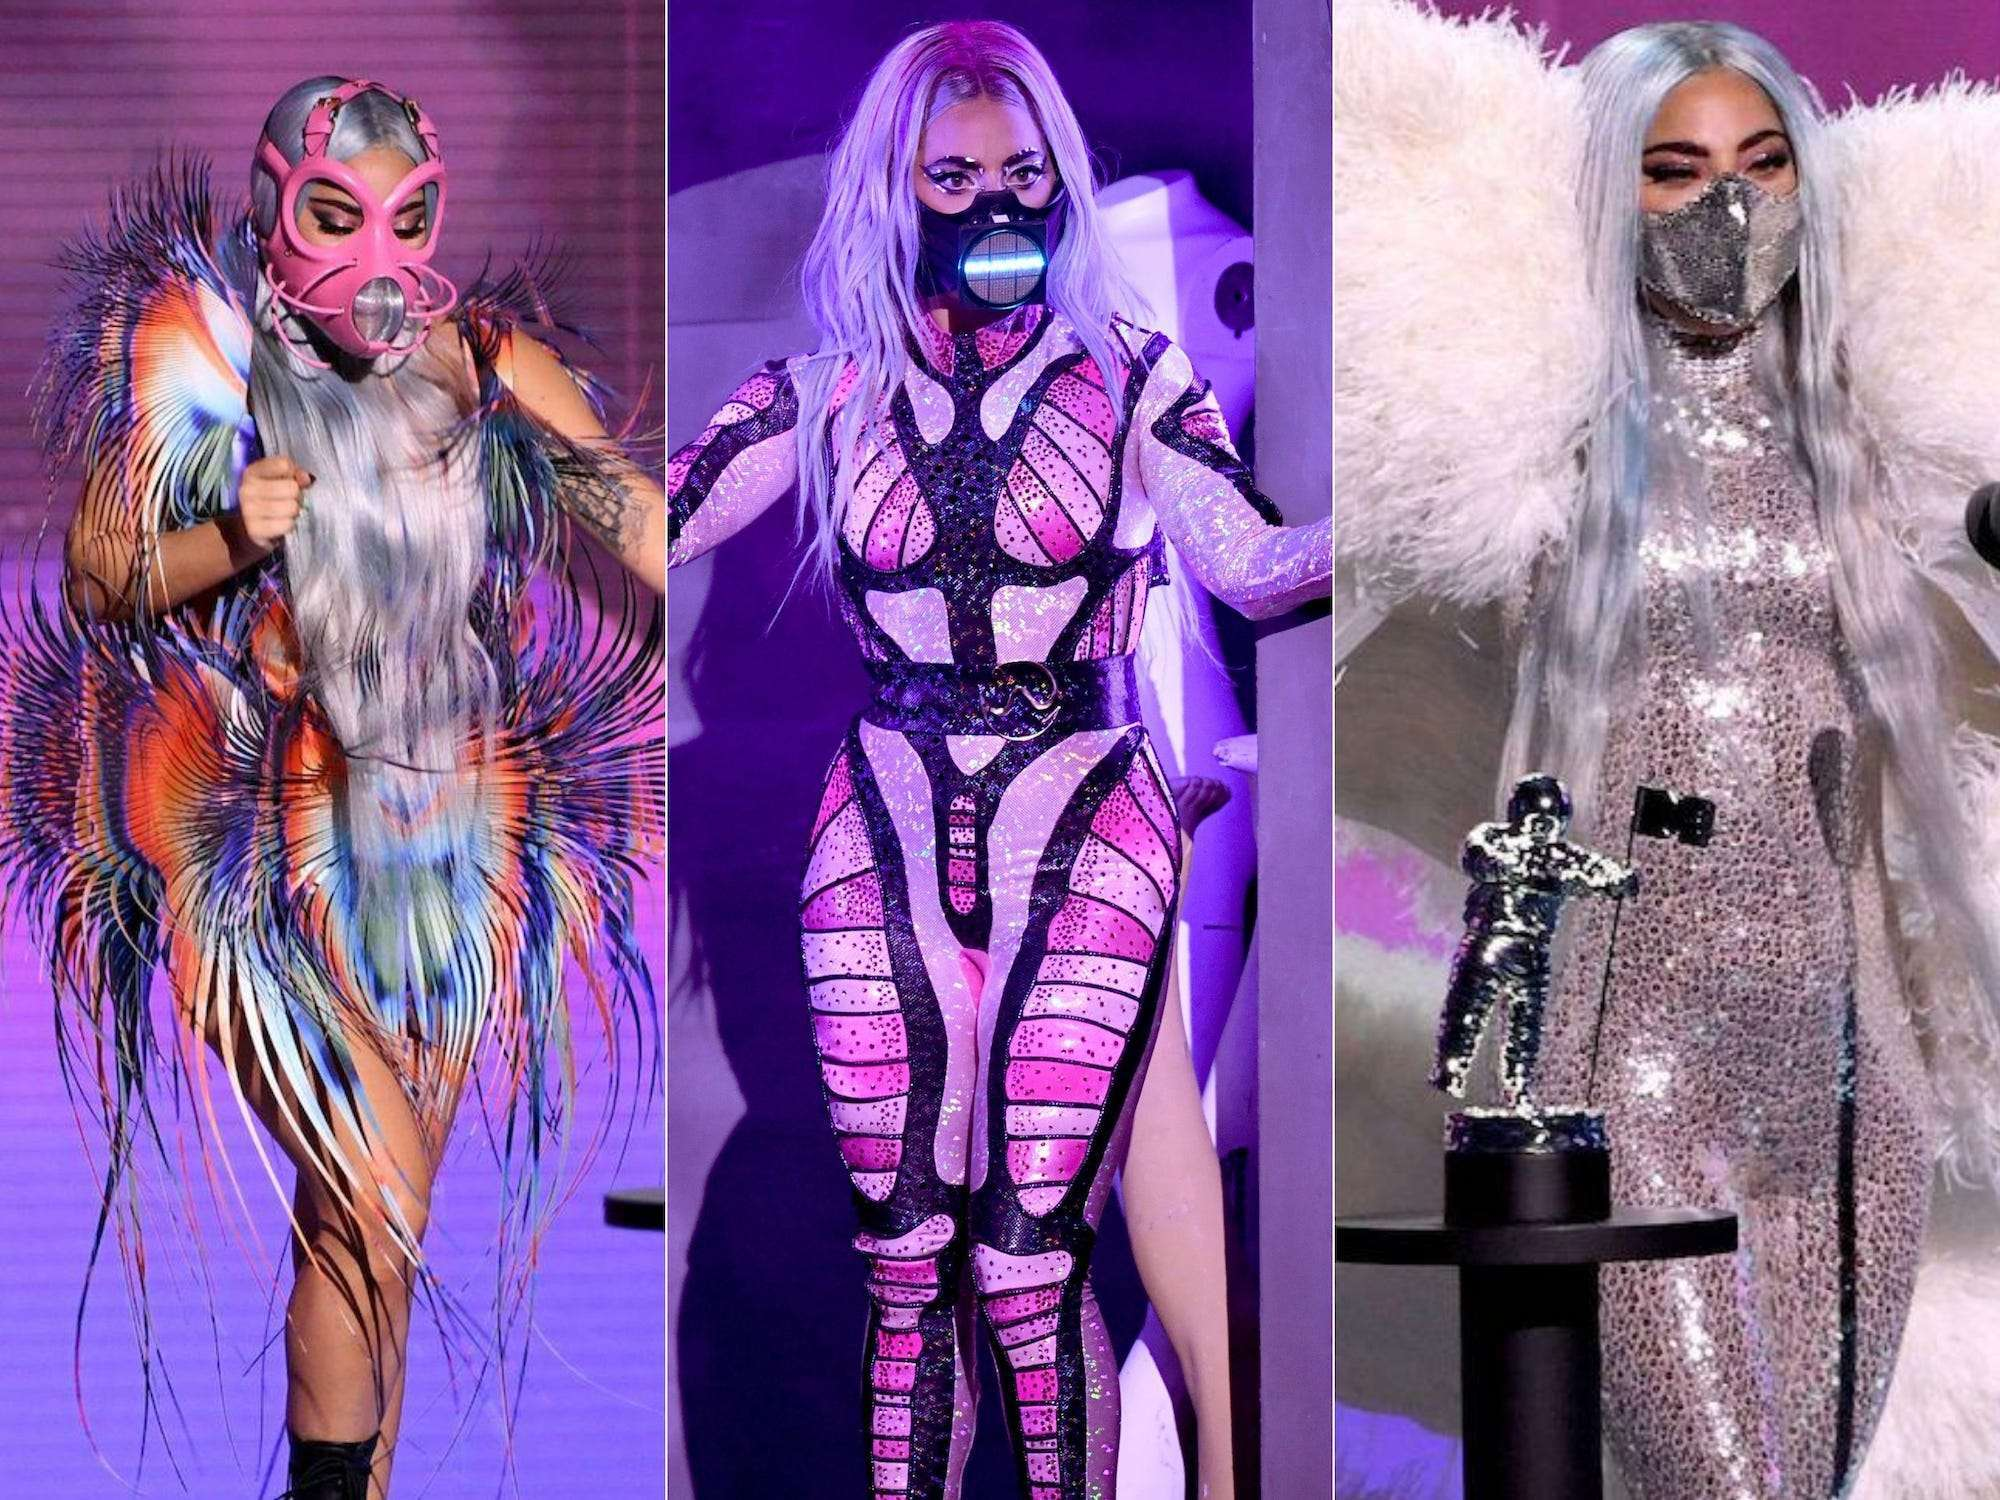 3 images of Lady Gaga at her VMA performance